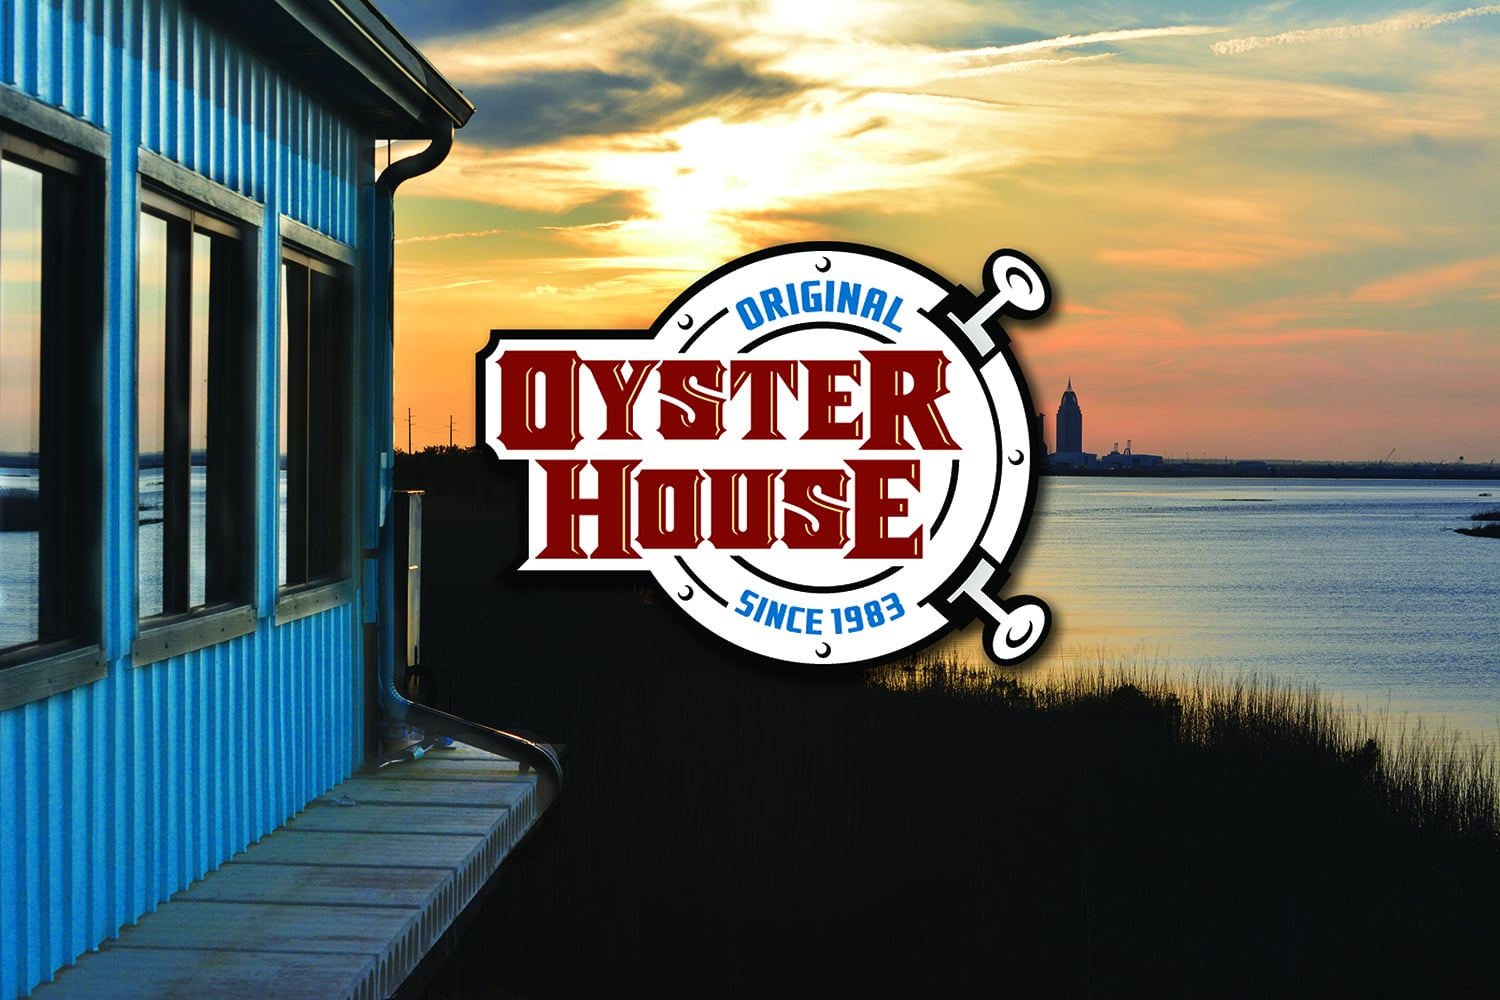 Original Oyster House Spectacular Sunset Contest